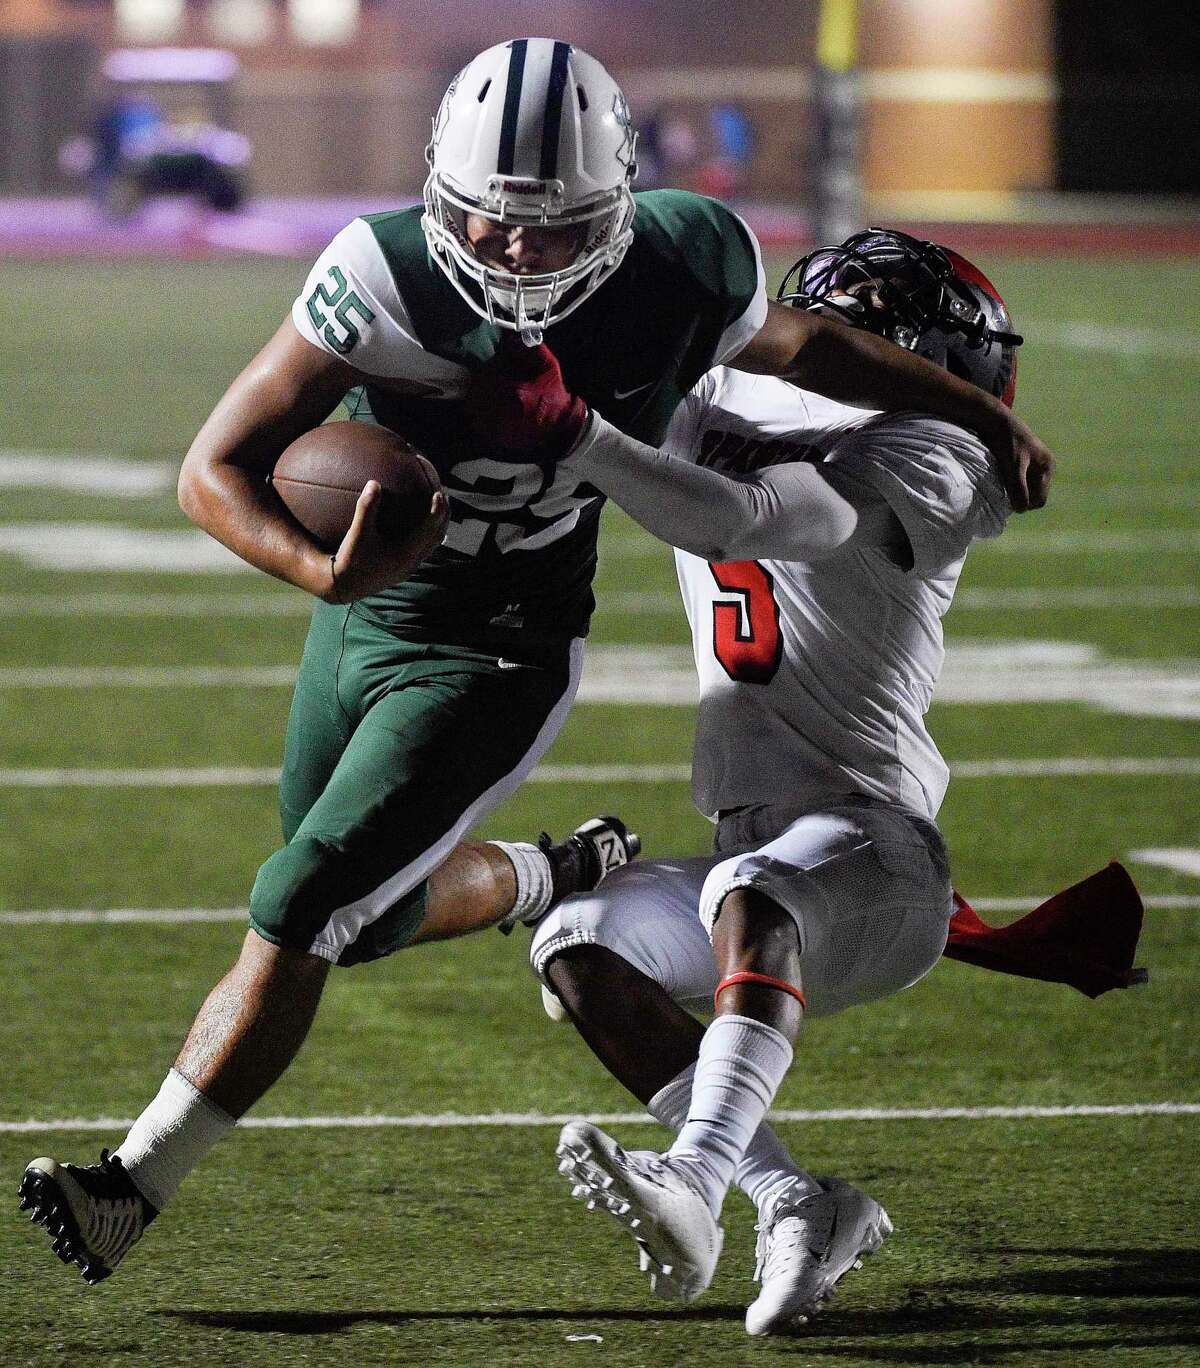 Kingwood Park running back Juan Garcia (25) pushes off Porter defensive back Kaleb Bailey during the second half of a high school football game, Saturday, Sept. 29, 2018, in Humble, TX. (Eric Christian Smith/Contributor)